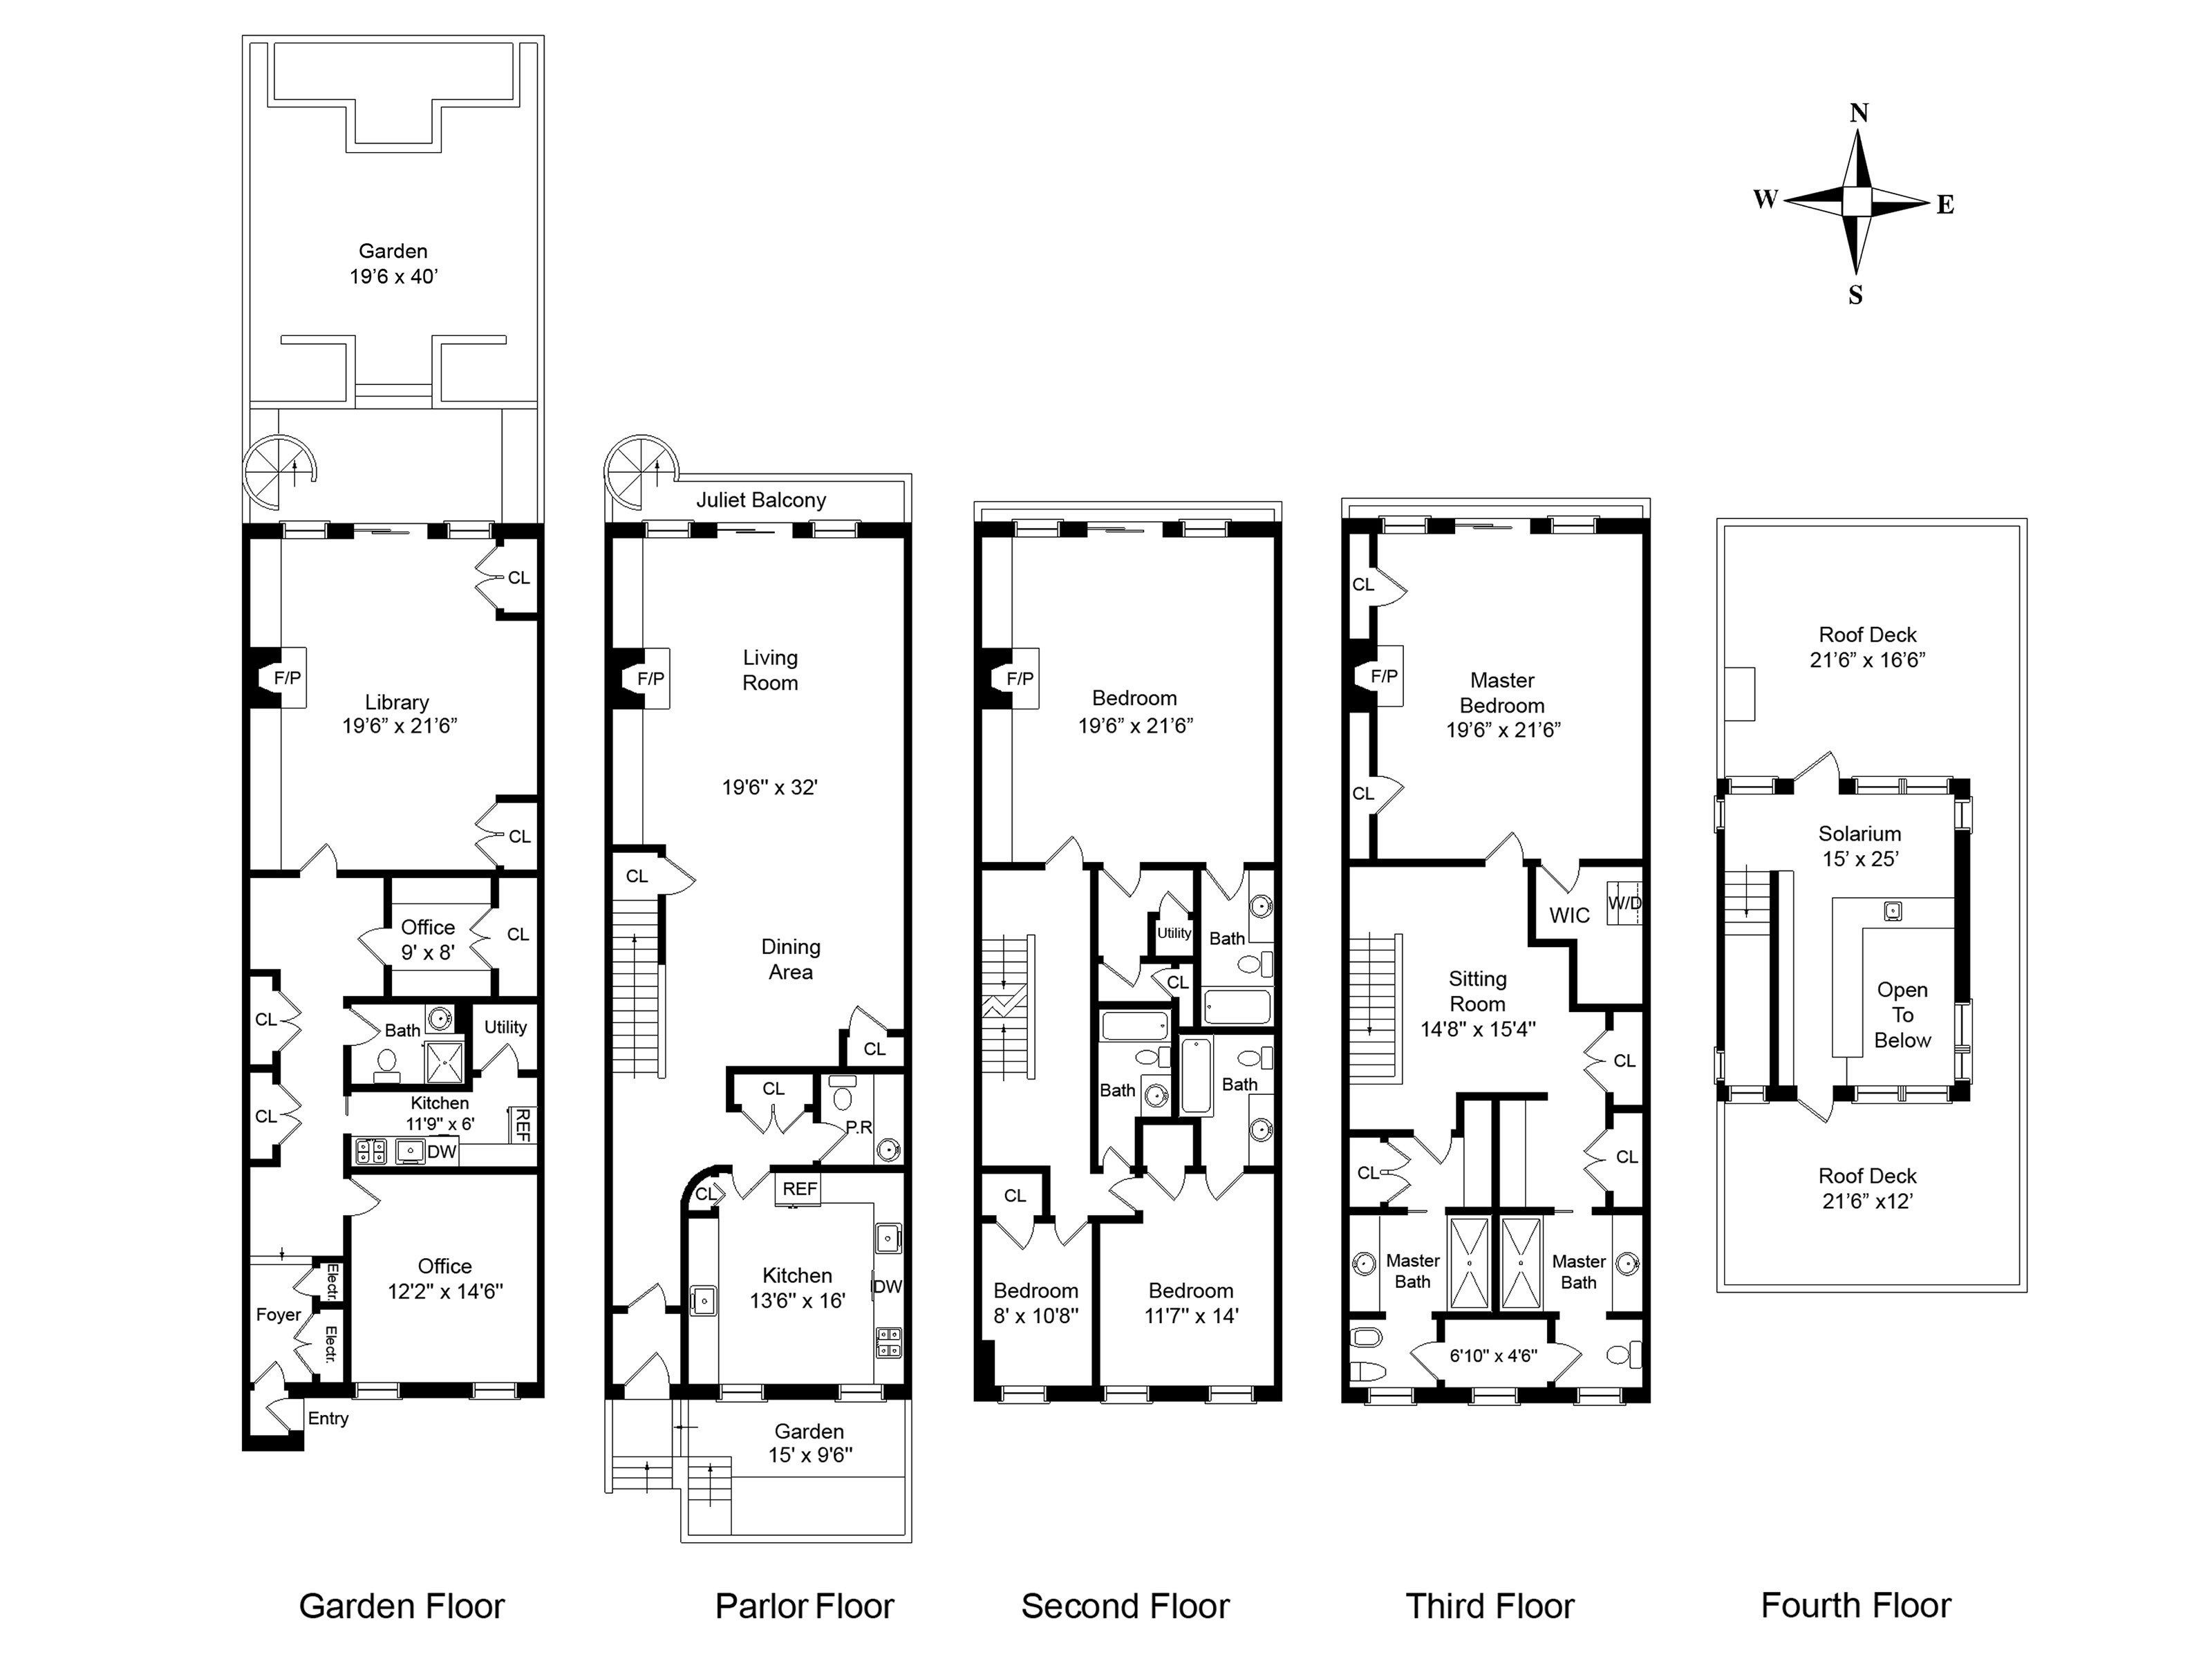 New york townhouse floor plans house plans pinterest for Small townhouse floor plans